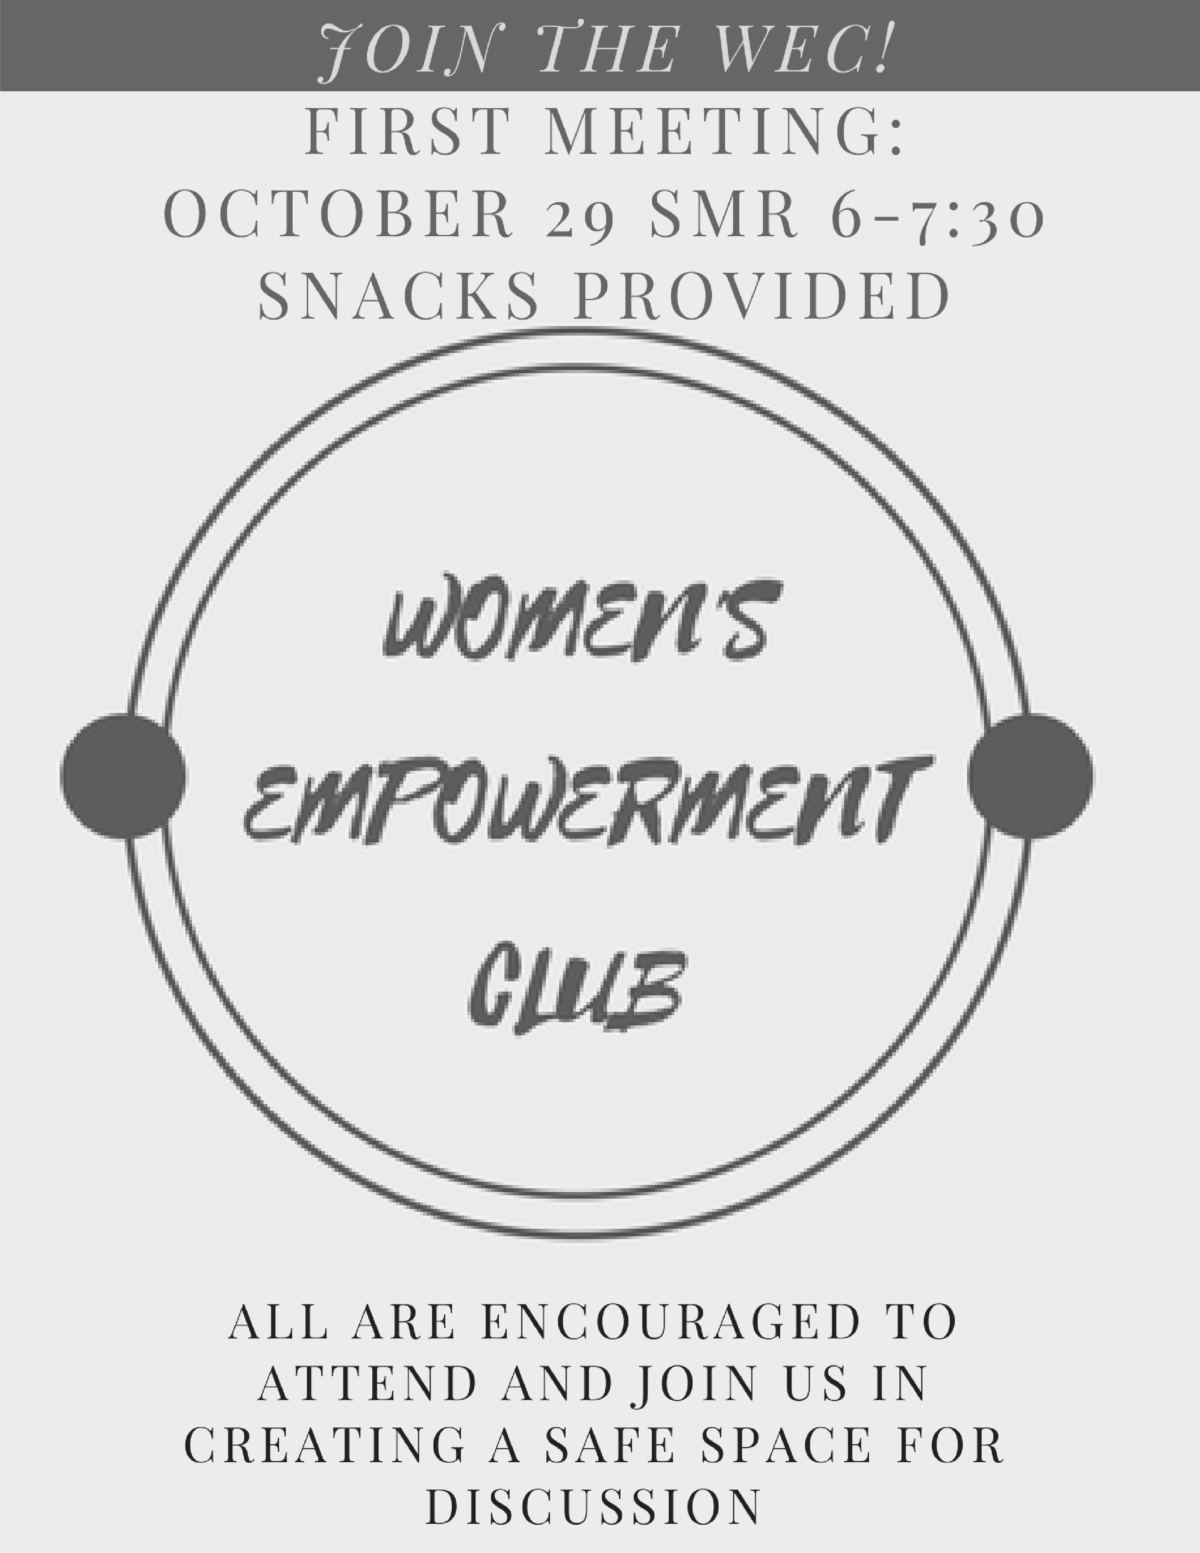 Women's Empowerment Club First Meeting!